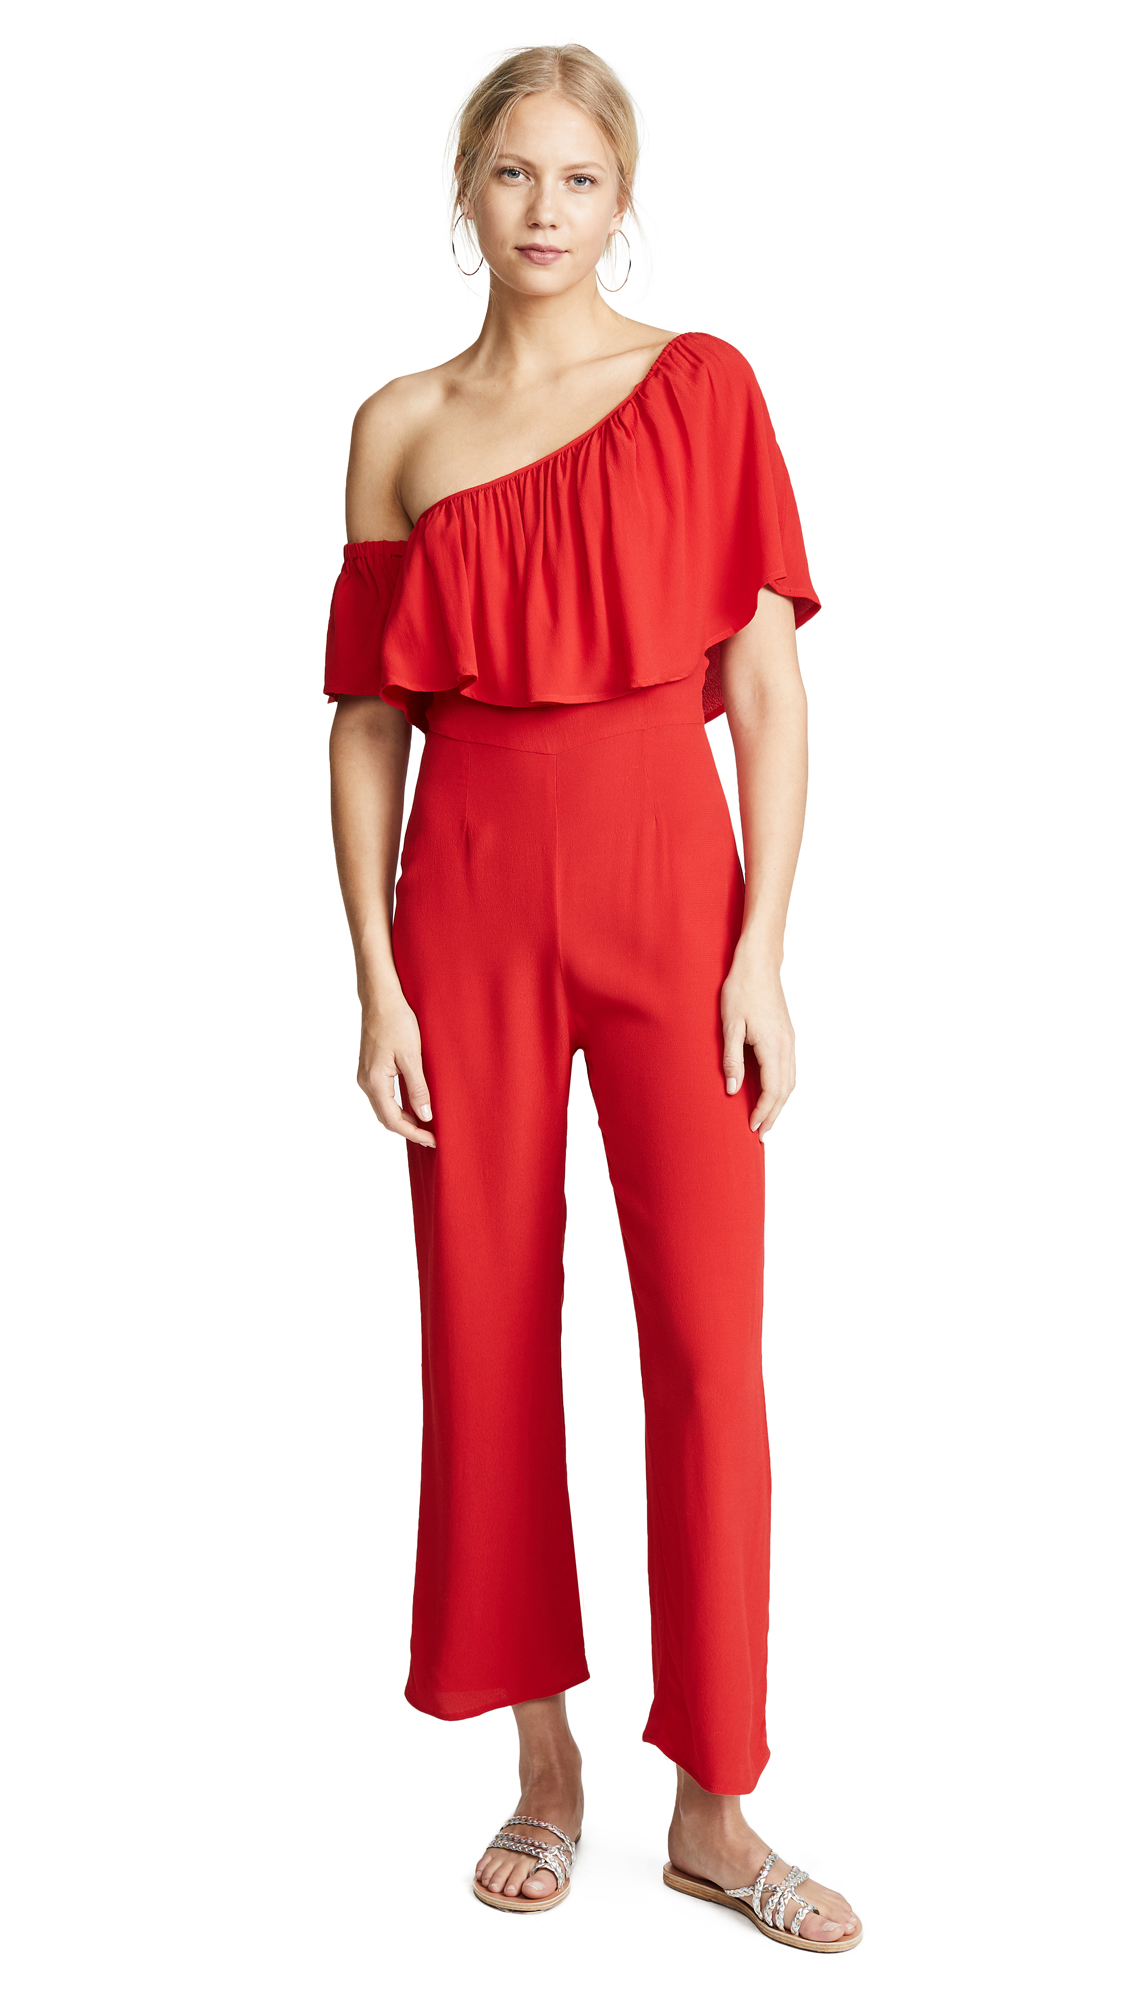 Flynn Skye Claire Jumpsuit In Kiss My Lips